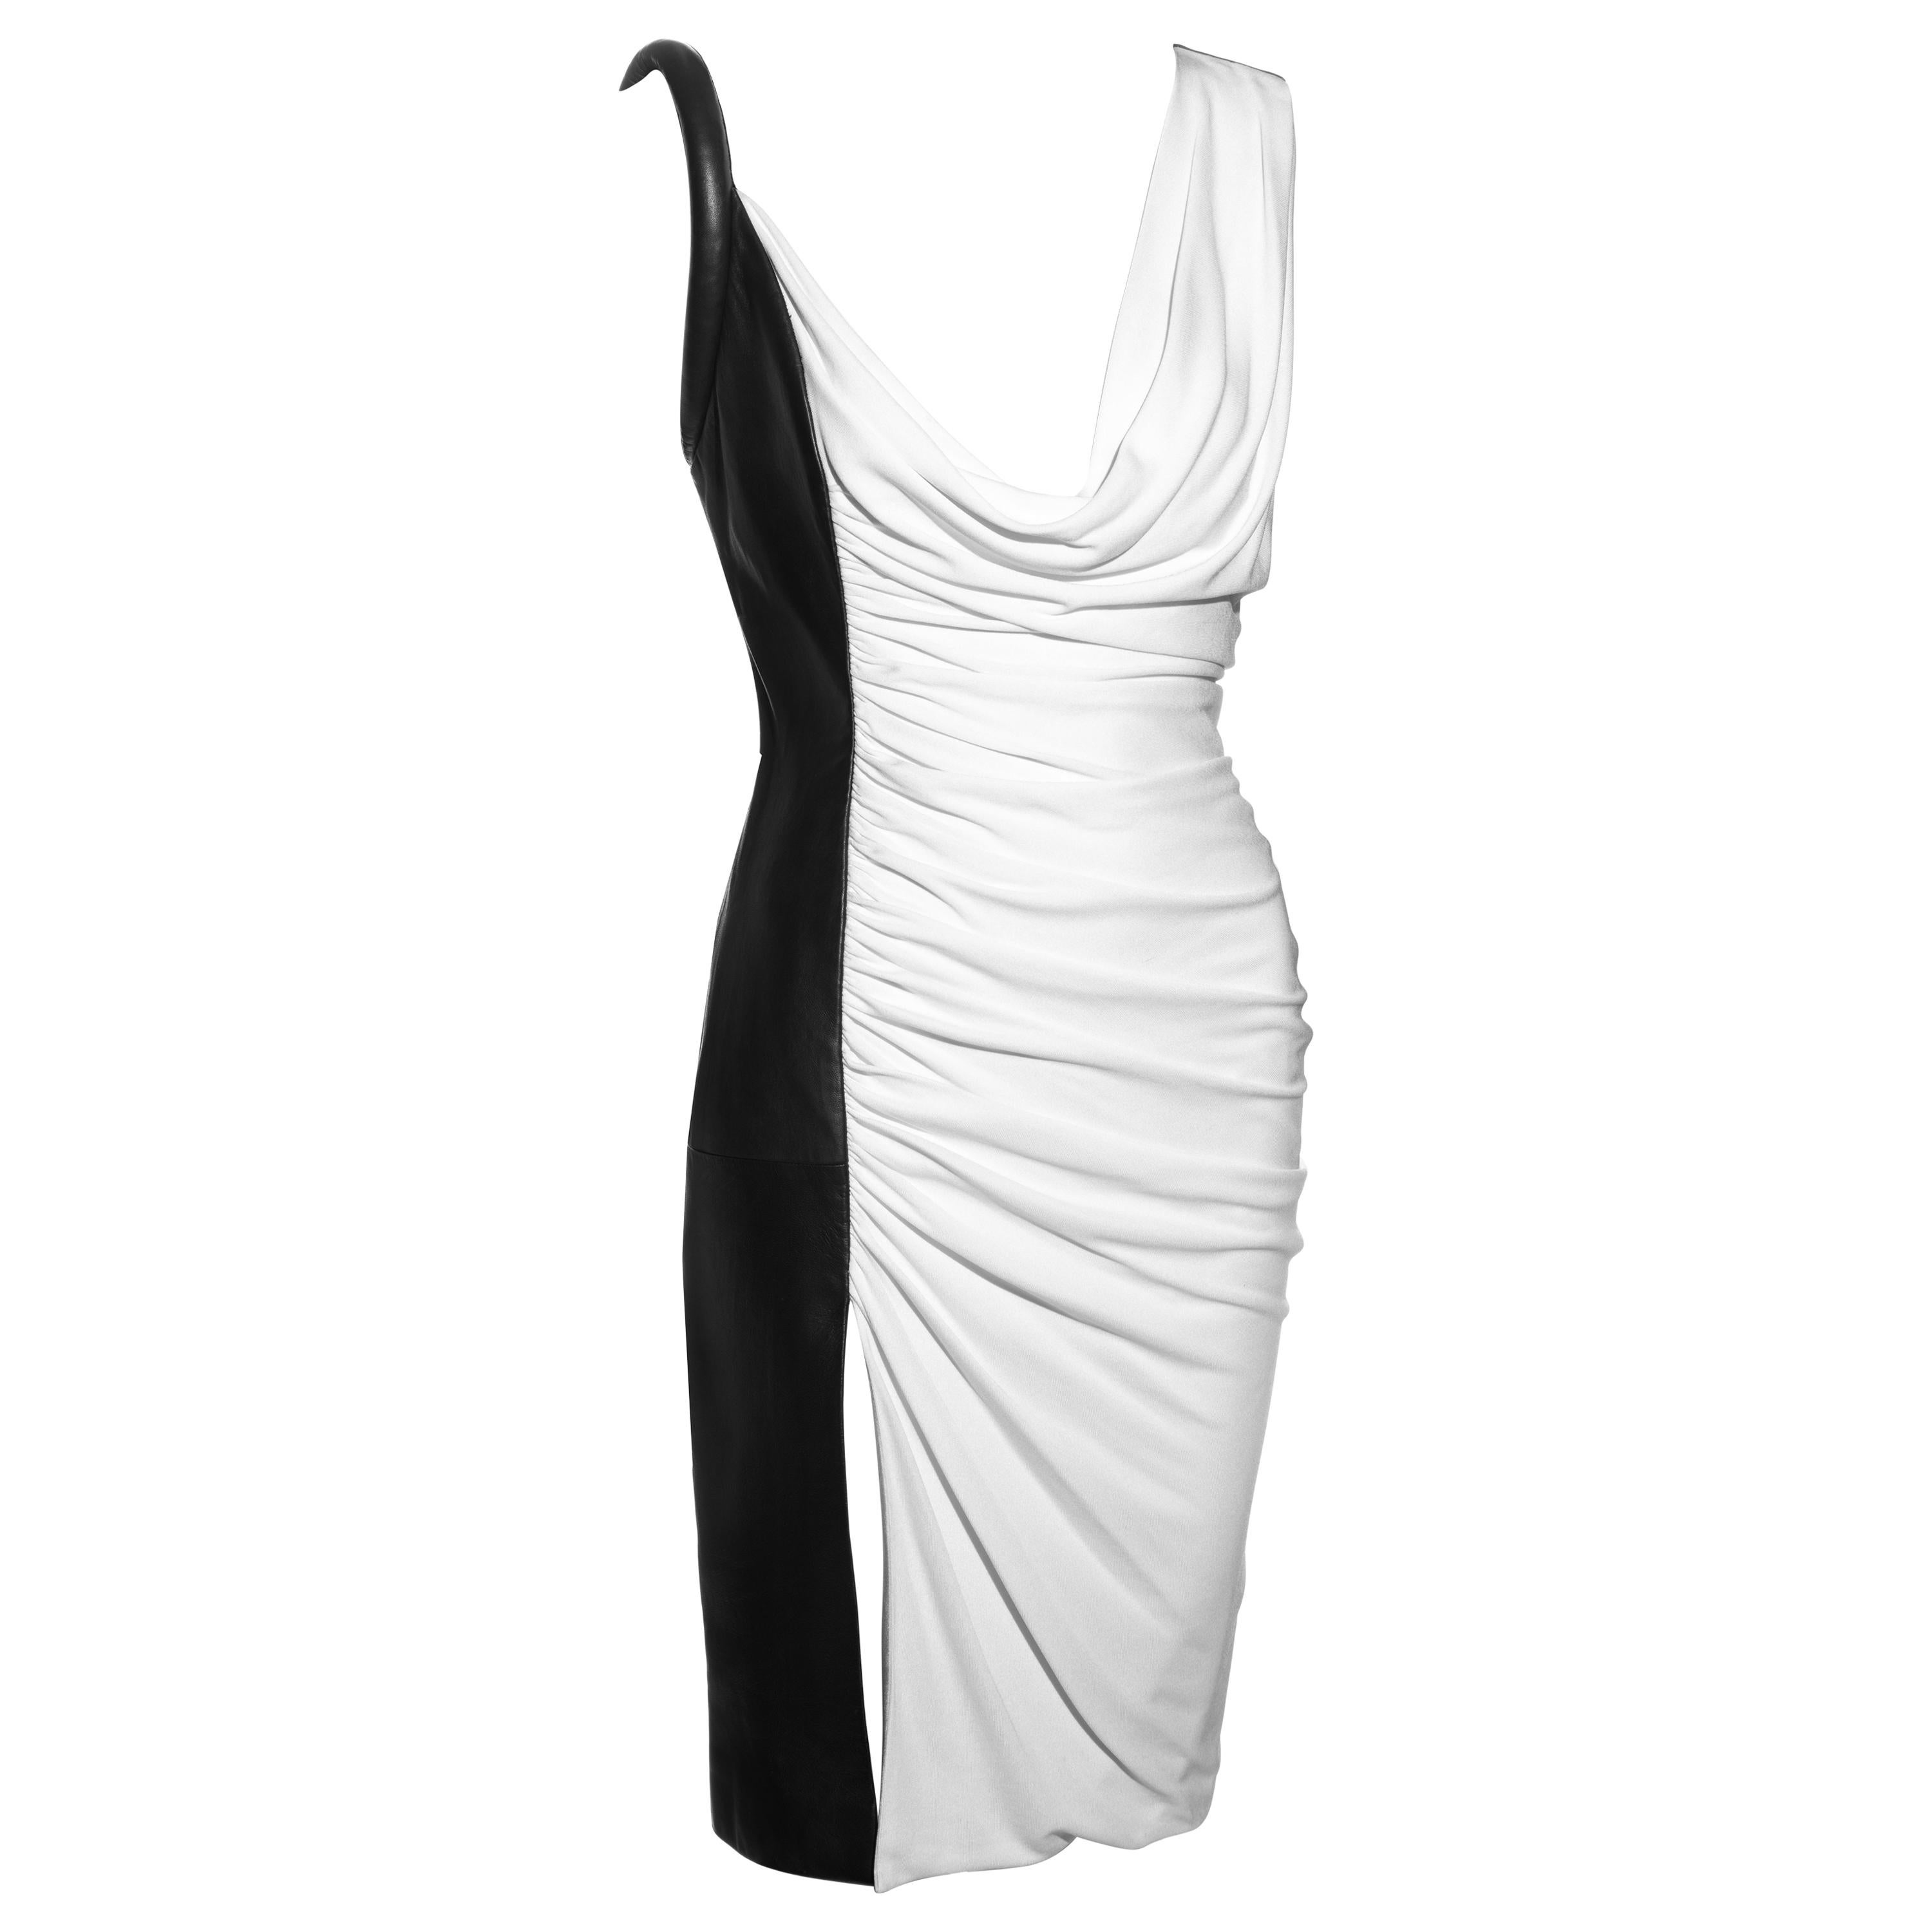 Gianni Versace black and white leather and rayon evening dress, fw 1997